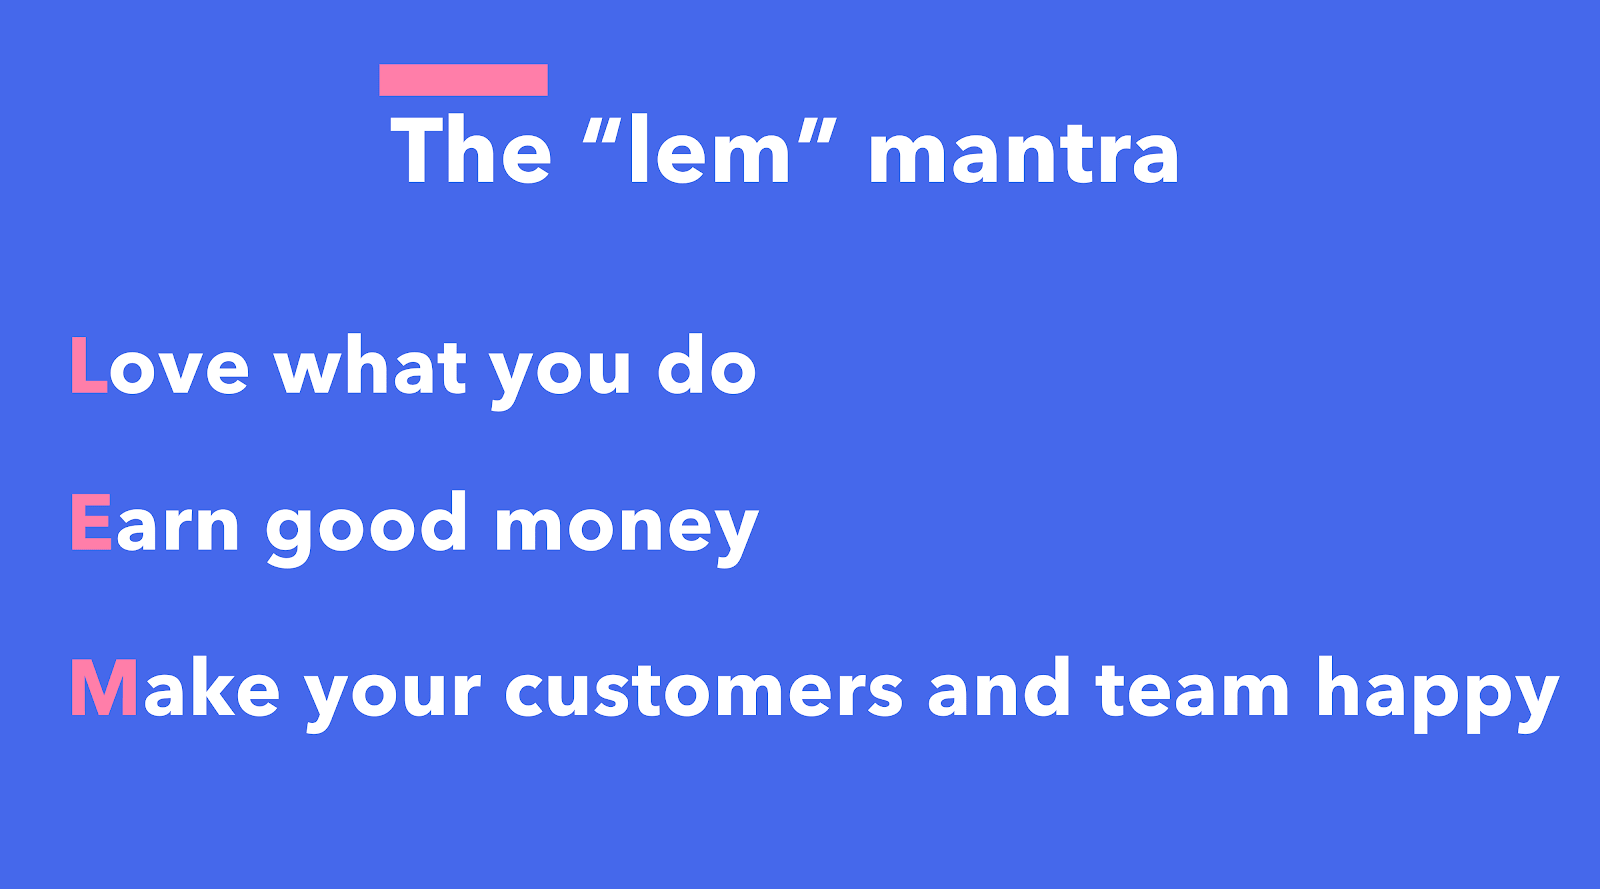 "The ""lem"" mantra"